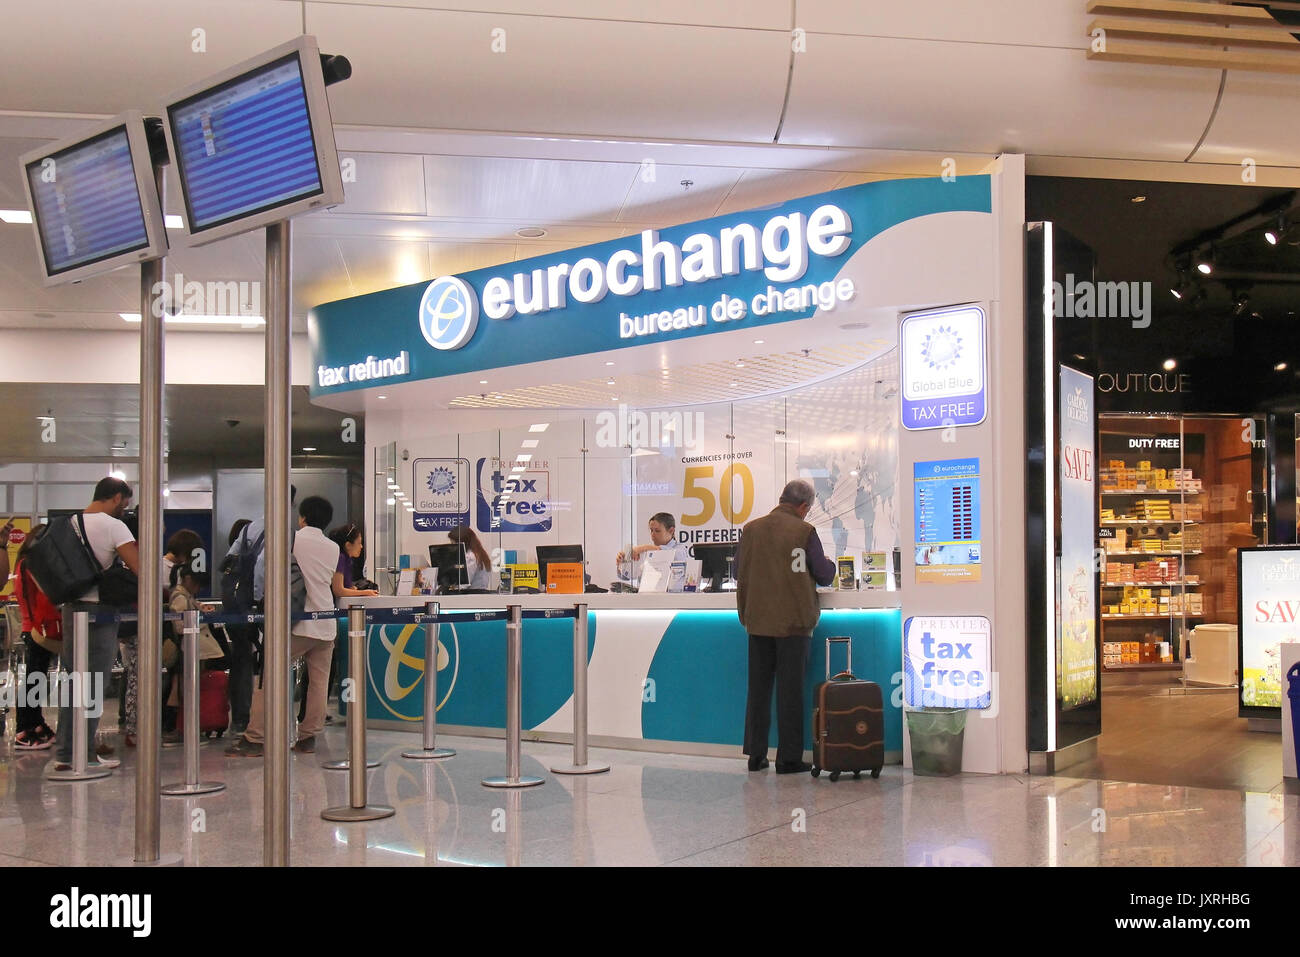 currency exchange airport stock photos currency exchange airport stock images alamy. Black Bedroom Furniture Sets. Home Design Ideas